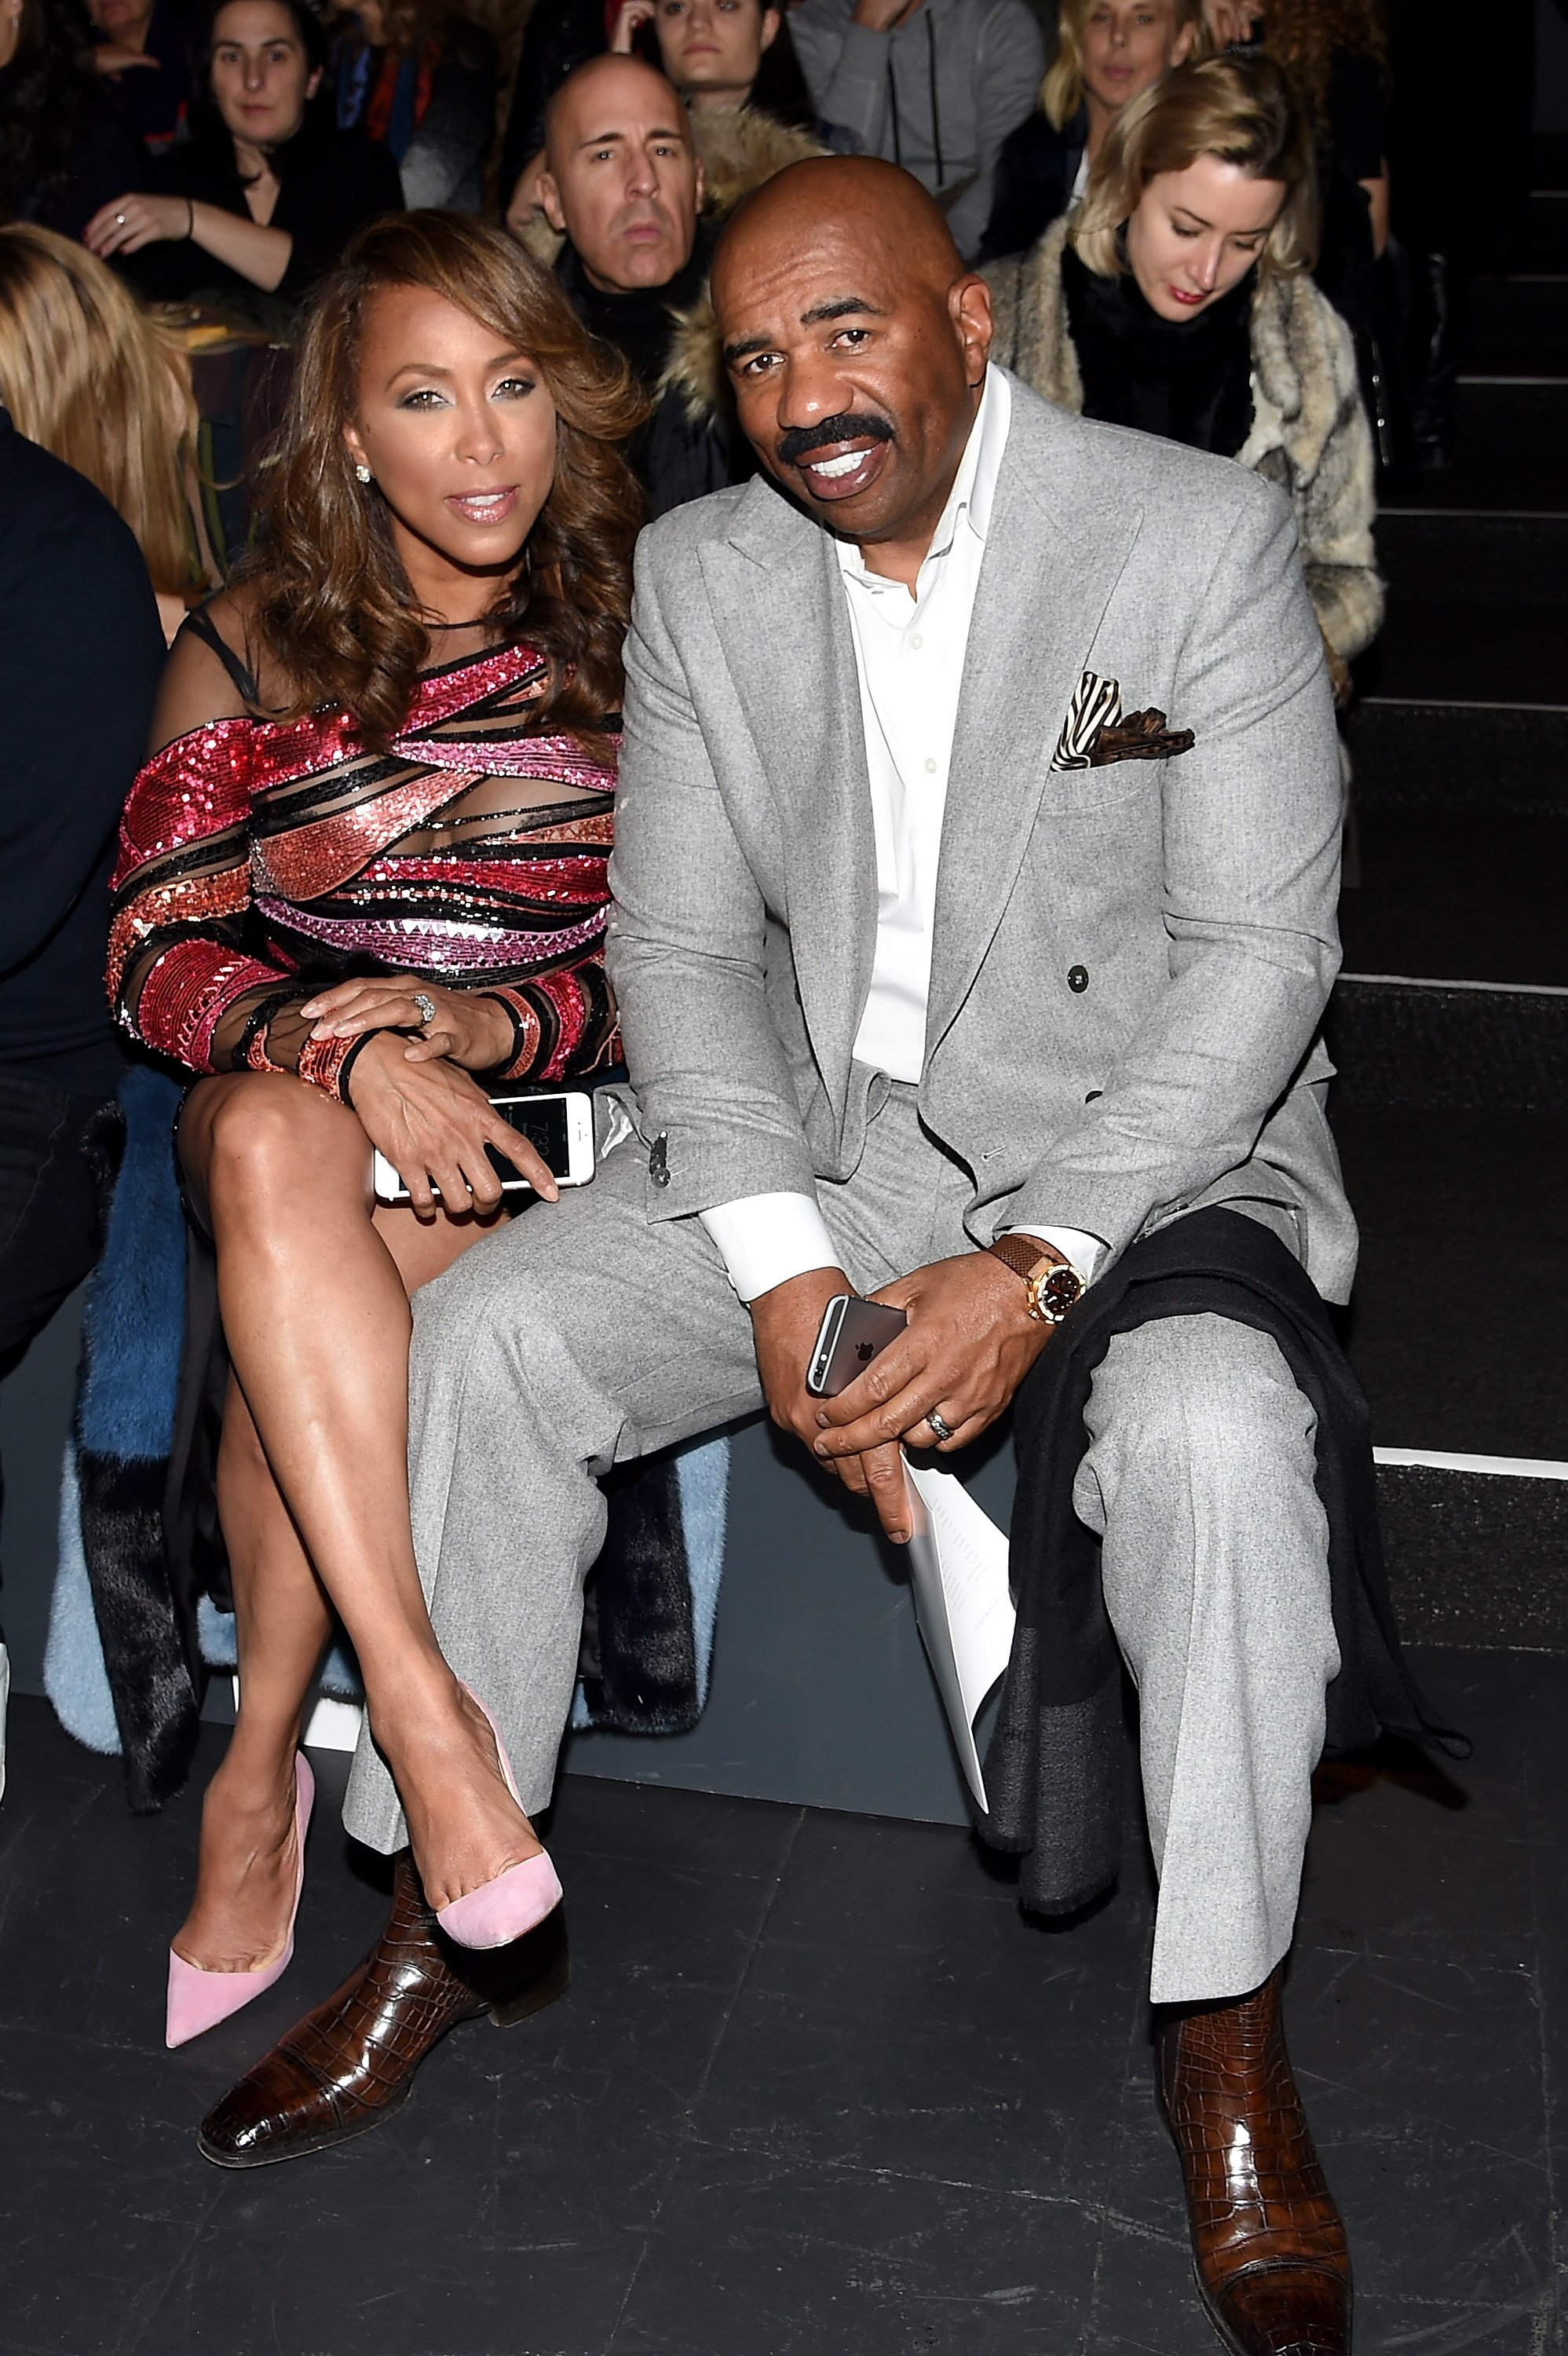 Marjorie and Steve Harvey attend the Prabal Gurung Fall 2016 fashion show during NYFW in New York City on February 14, 2016 | Photo: Getty Images